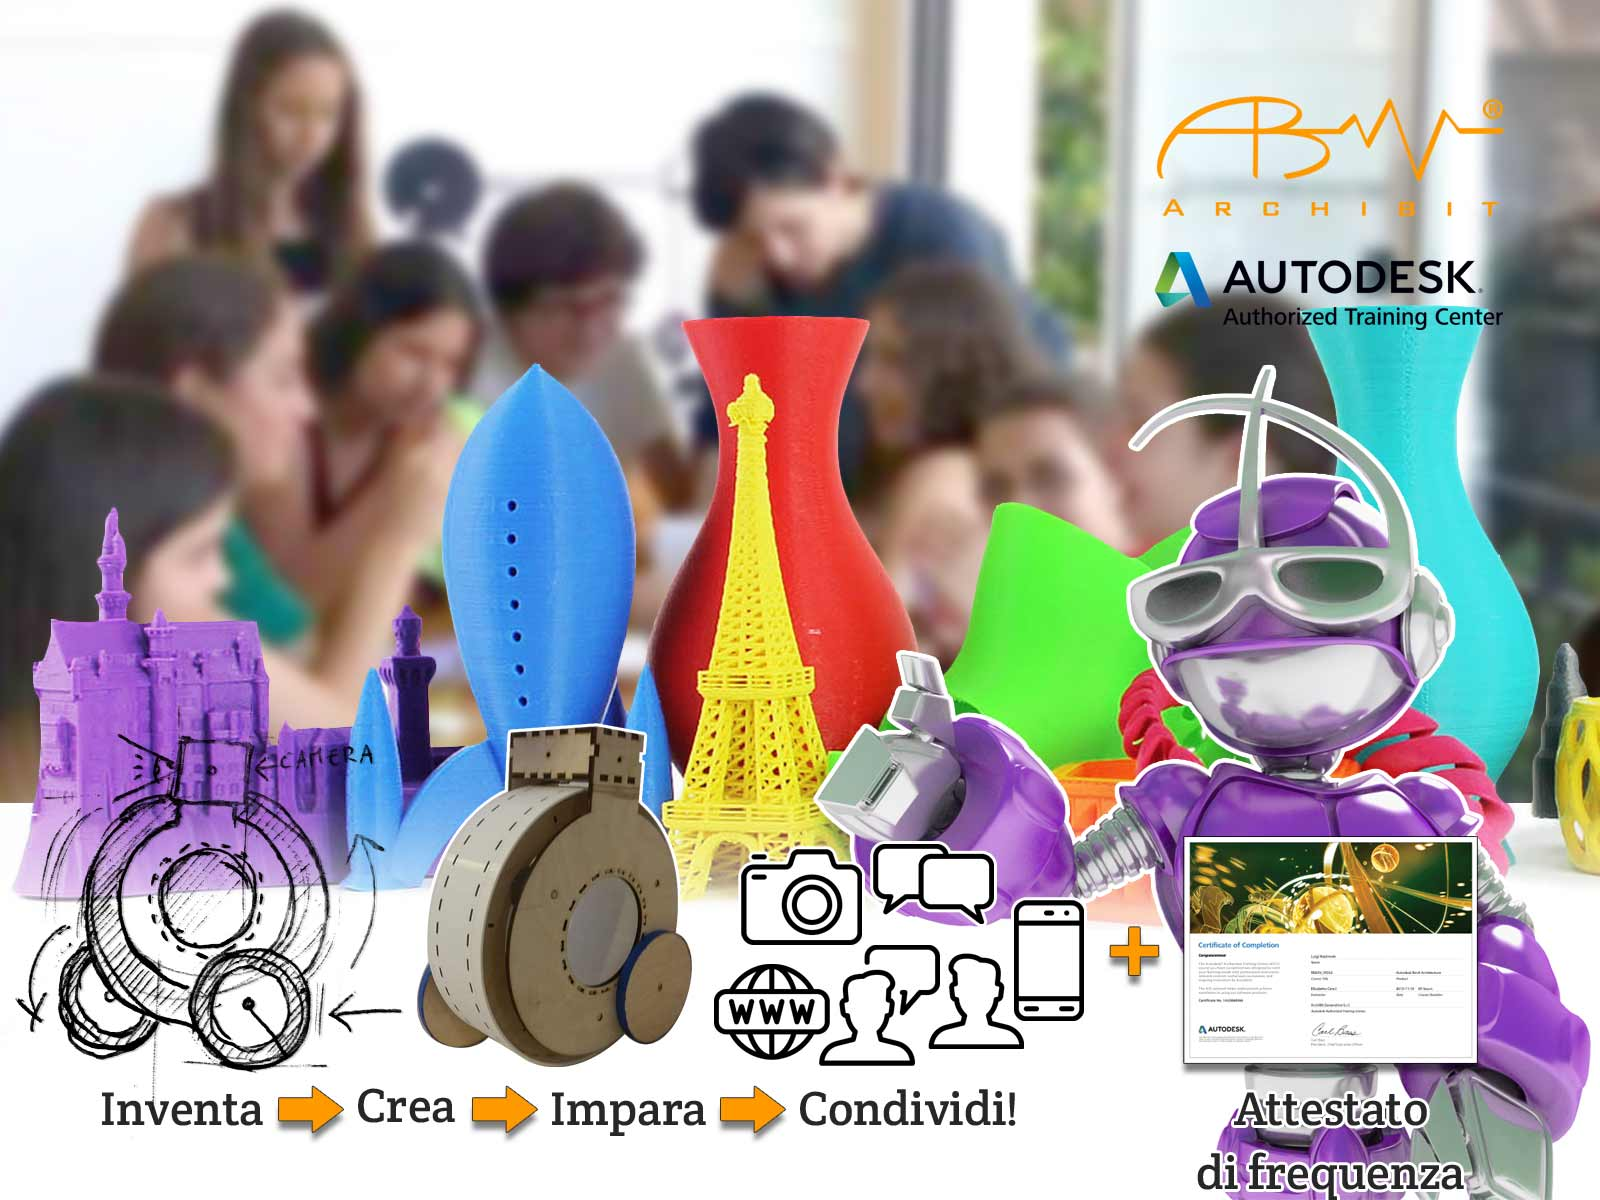 summer camp hi tech per ragazzi e ragazze - archibit centro corsi grafica summer camp roma nord